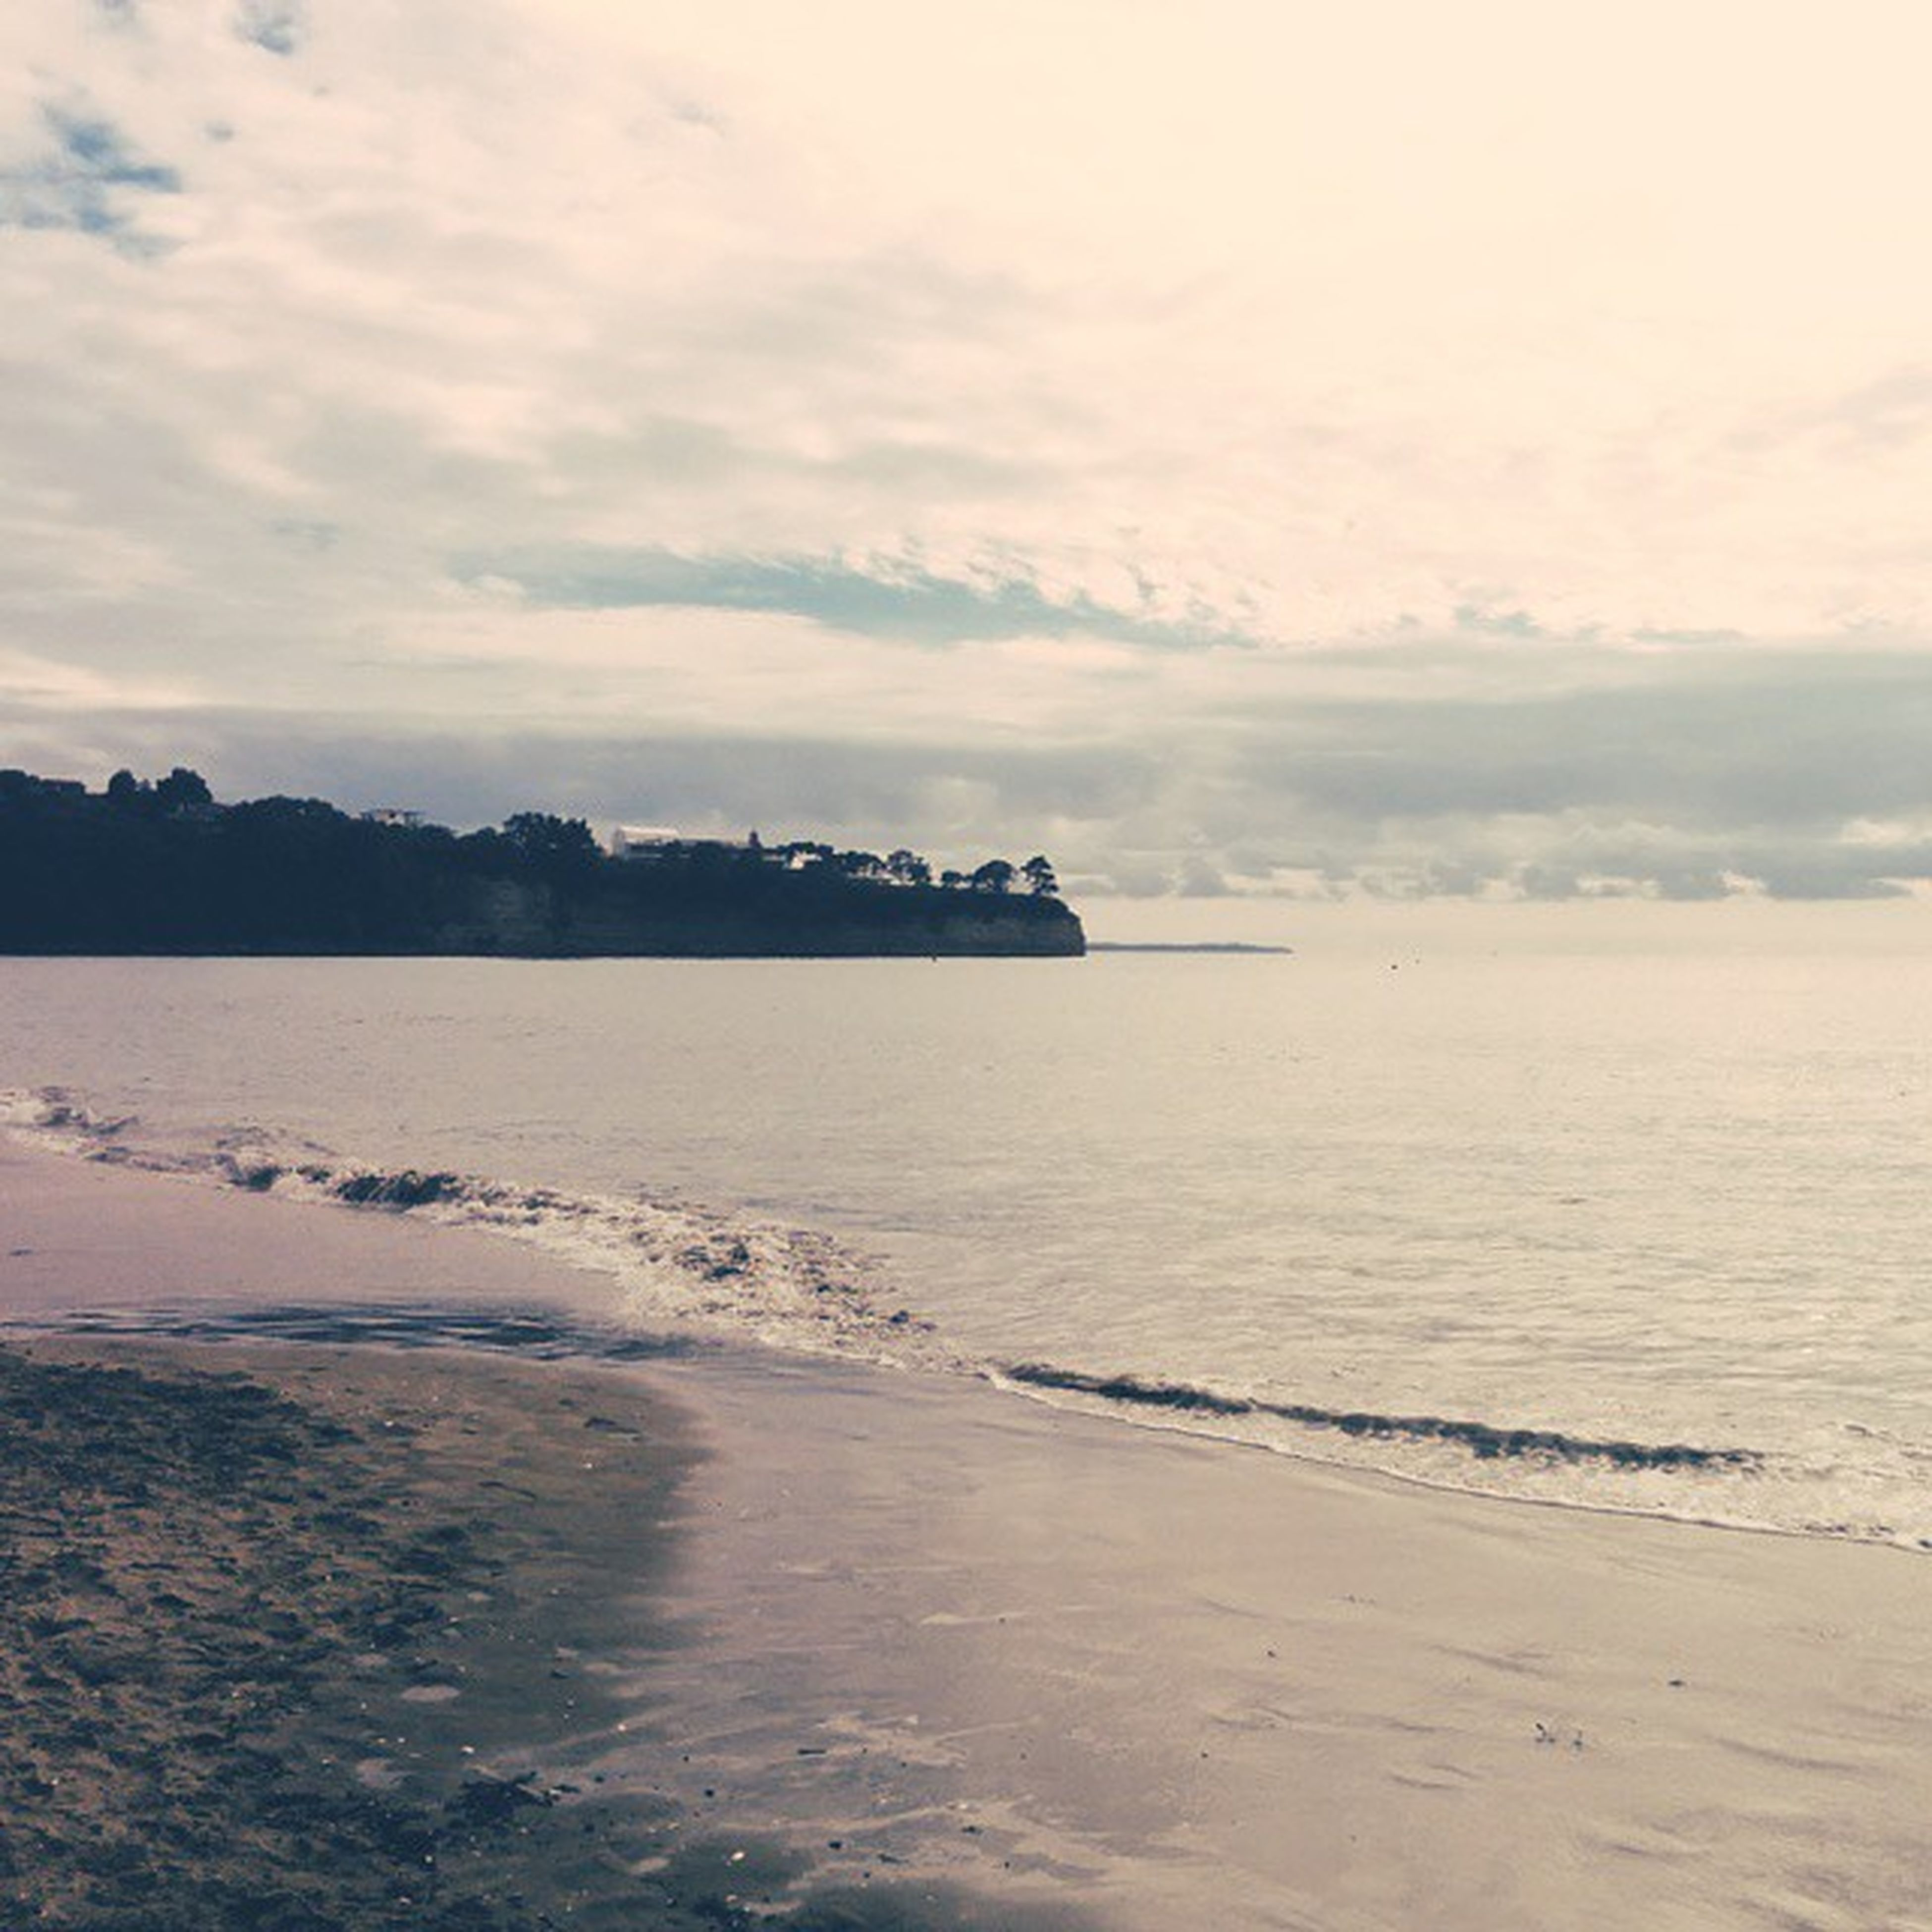 water, sea, sky, tranquil scene, tranquility, scenics, beach, beauty in nature, cloud - sky, shore, horizon over water, nature, cloudy, cloud, sand, idyllic, calm, coastline, waterfront, outdoors